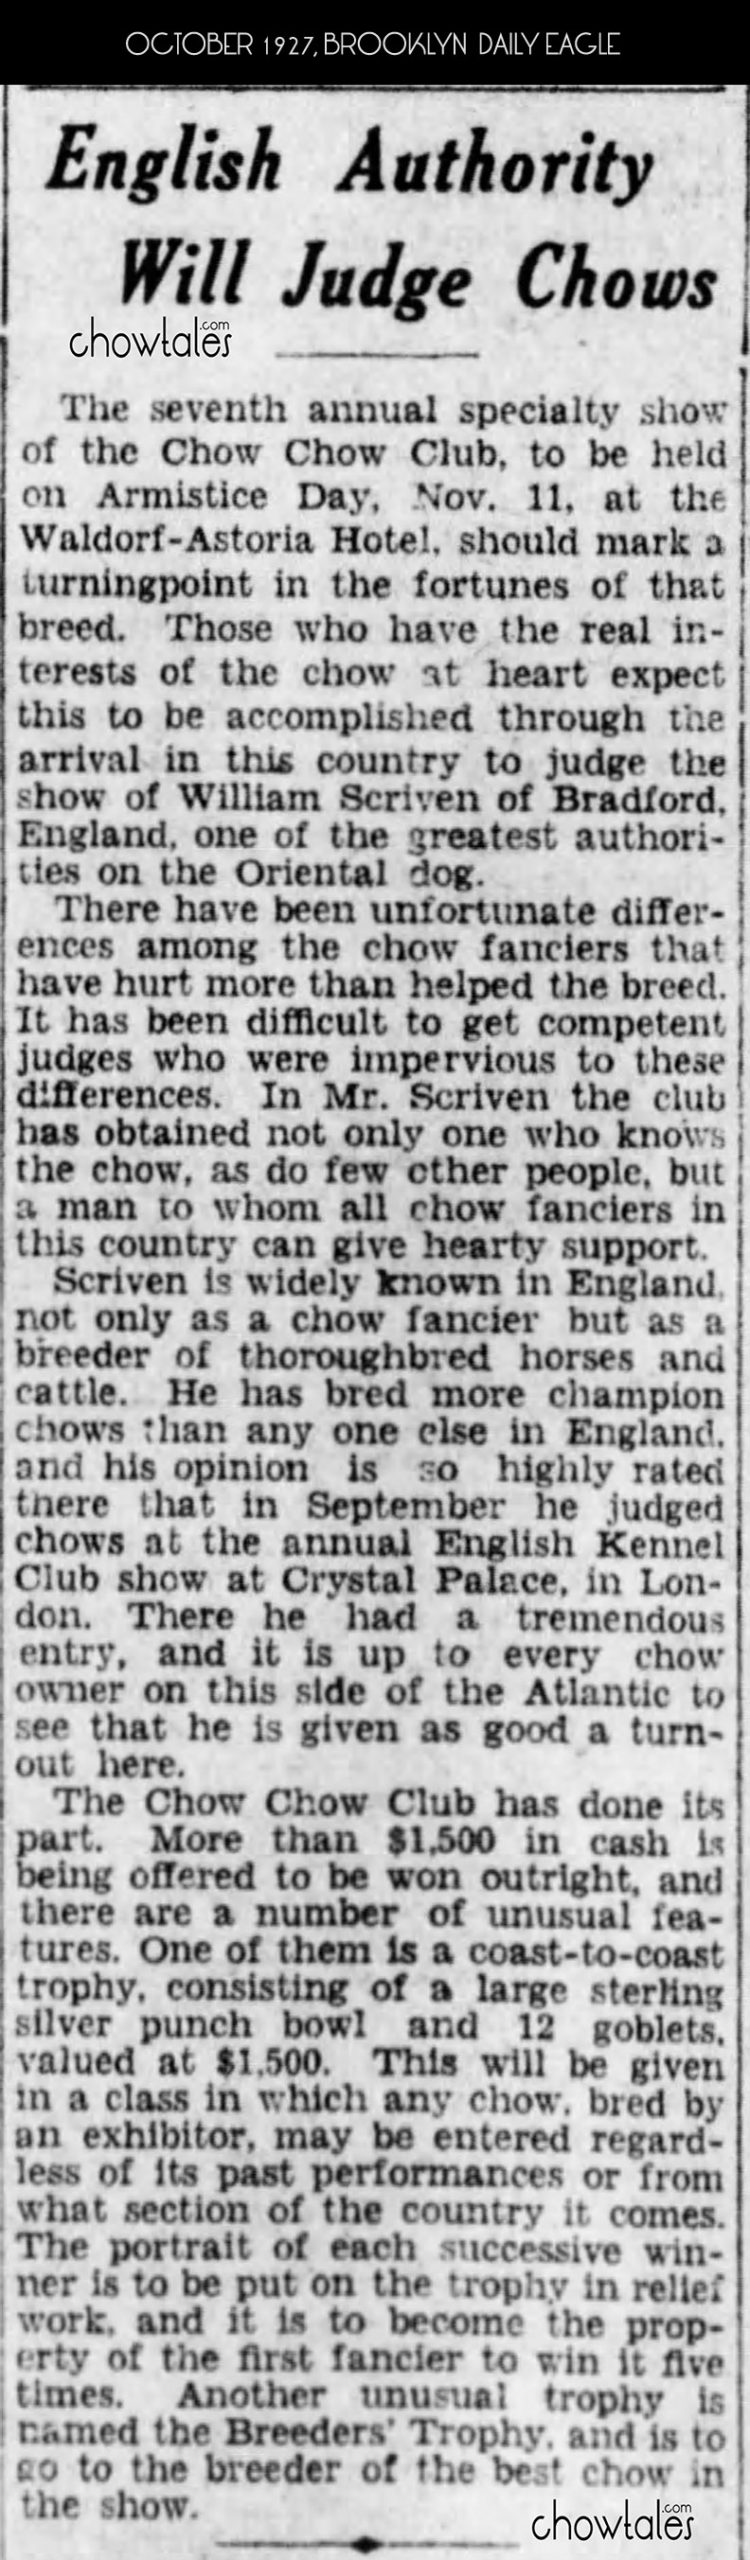 scriven judging The_Brooklyn_Daily_Eagle_Sun__Oct_30__1927_